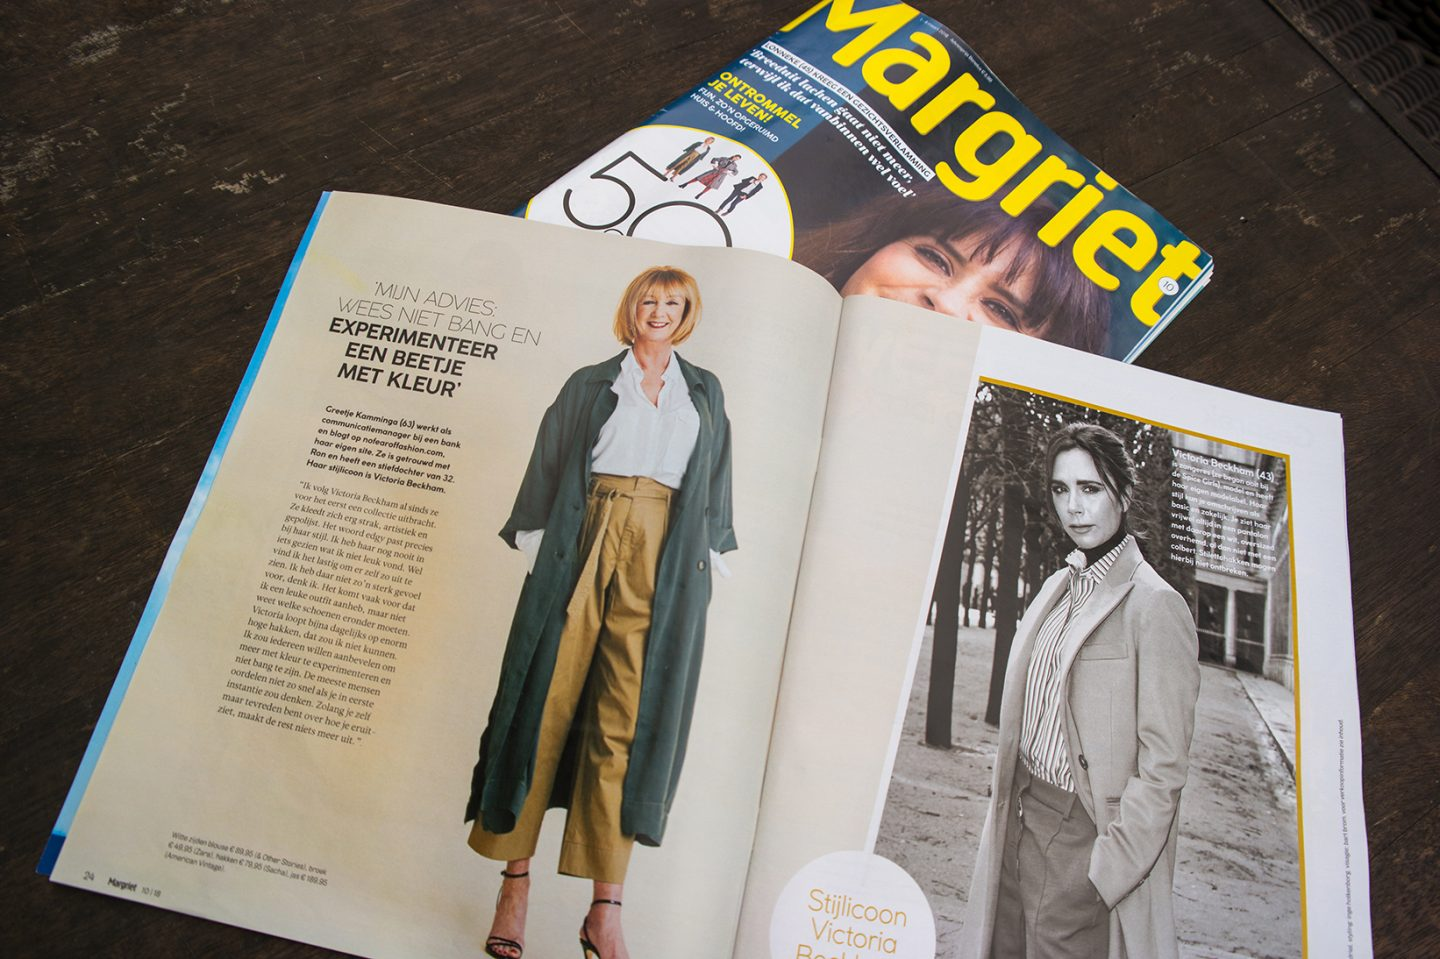 No Fear of Fashion in Margriet